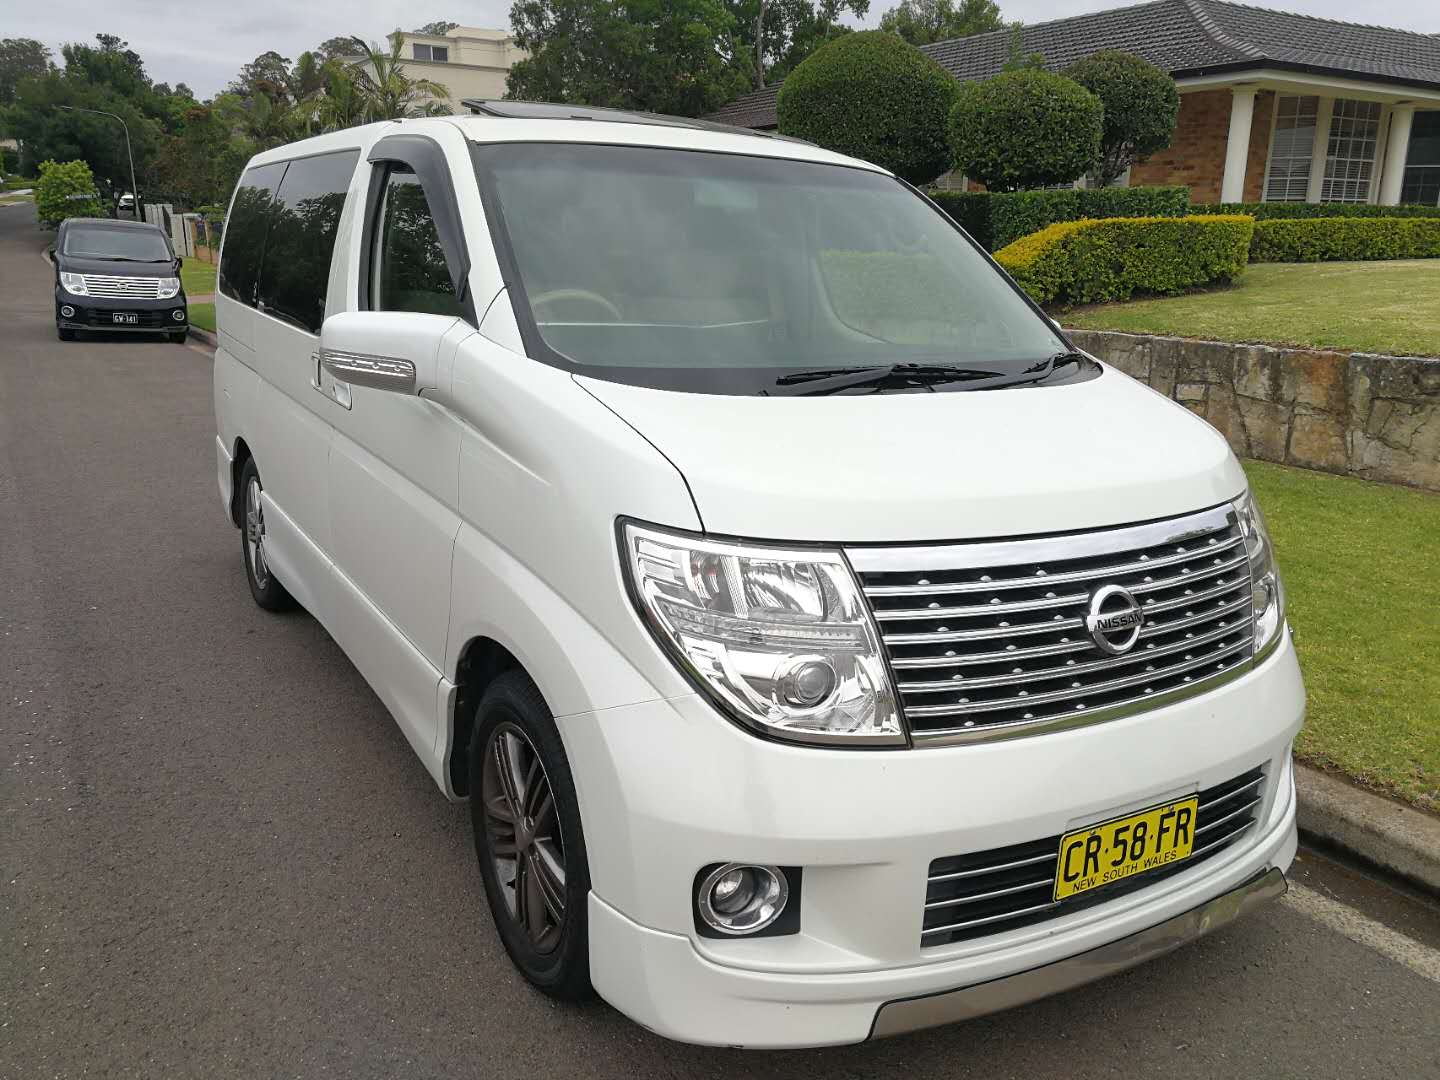 Picture of Ting's 2004 Nissan Elgrand